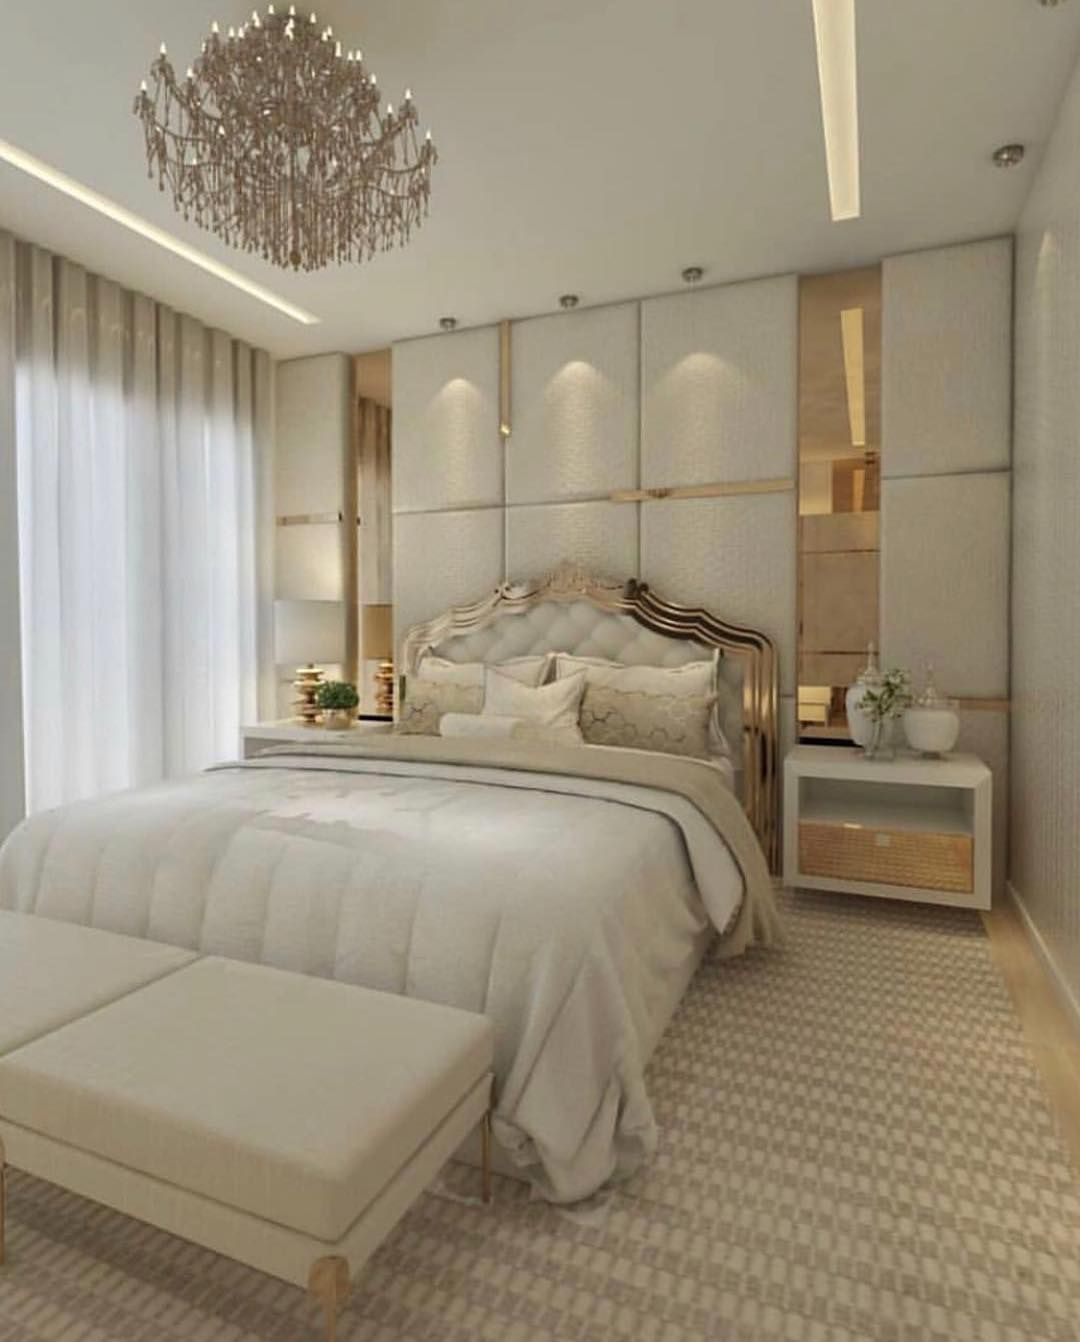 Image may contain bedroom and indoor also interiordesignideas interiordesign bedroomdesign rh pinterest